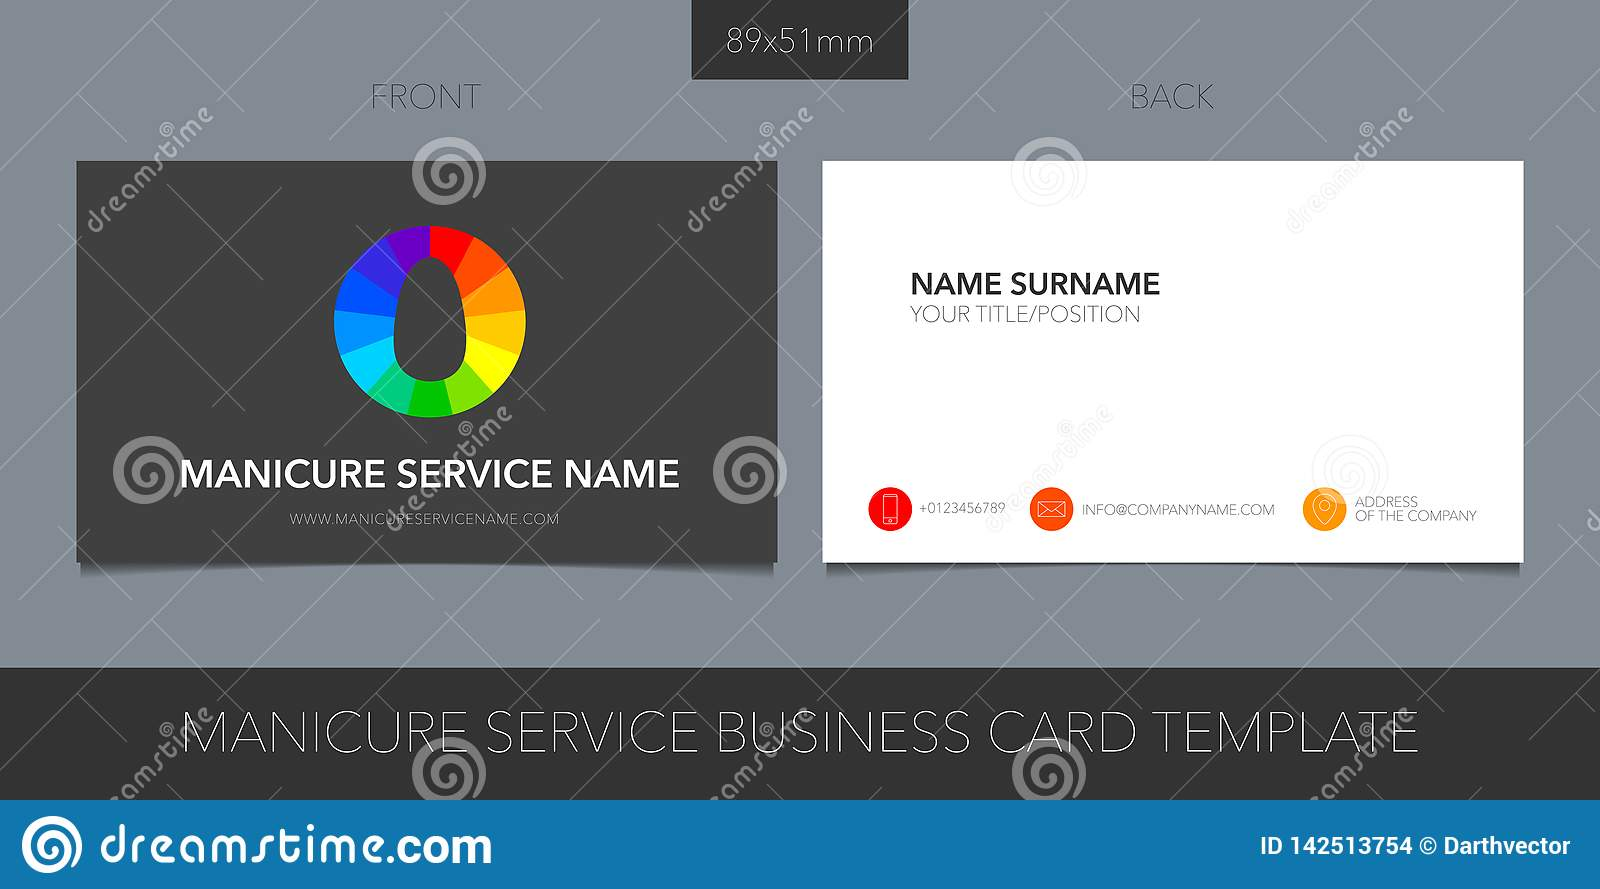 Business card template vector layout for nails business